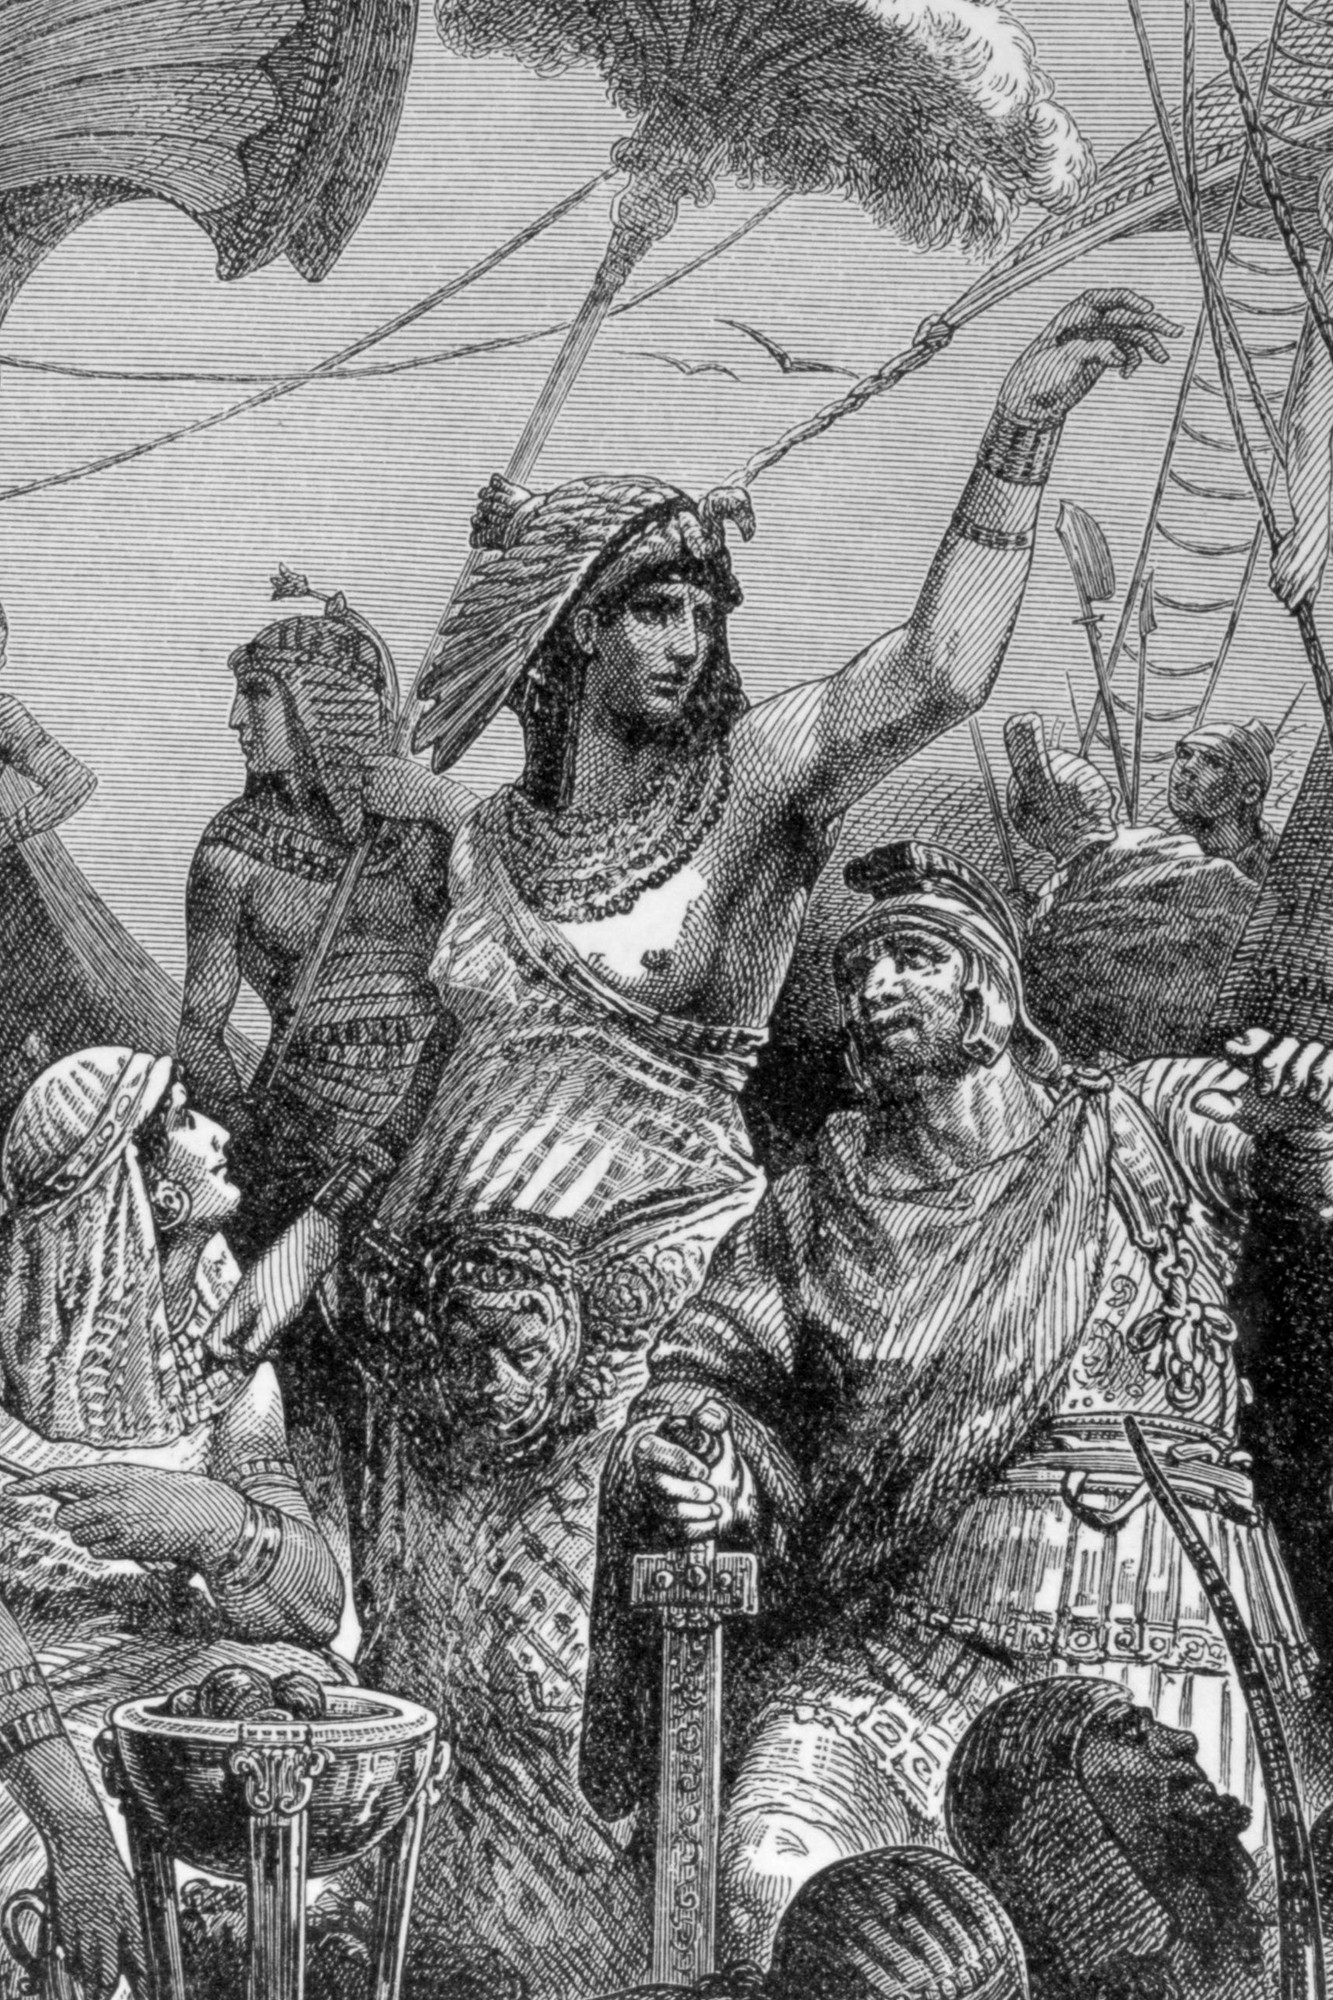 Ancient History Illustration. pic: 31 BC. Roman Civil War. This illustration is entitled Cleopatra, During The Battle Of Actium. The battle was fought between naval fleets of Marc Antony (supported by Cleopatra) and Octavian. The battle proved indecisive